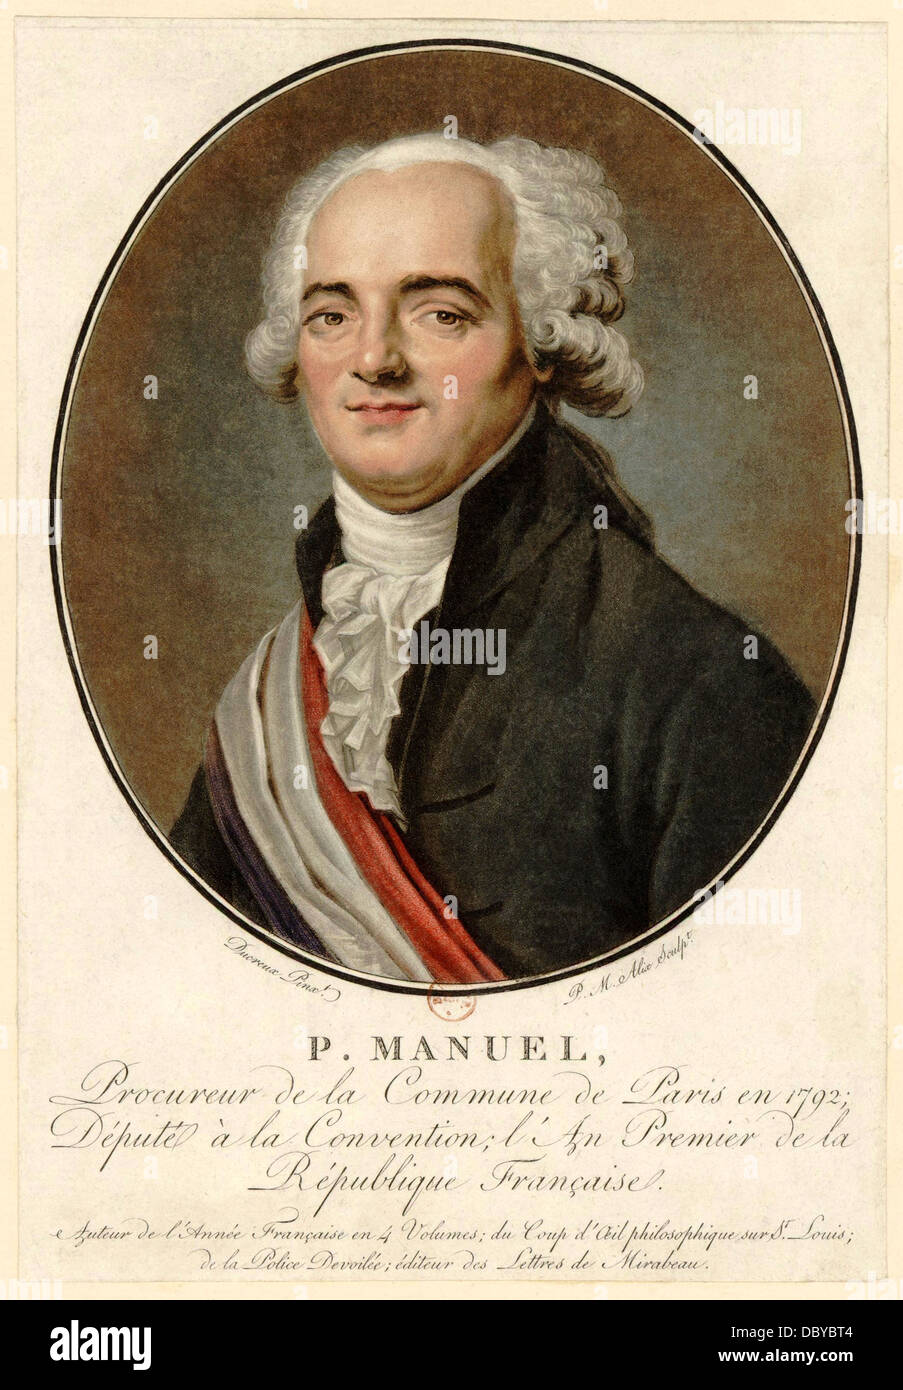 Pierre Louis Manuel (1751 - 1793), french revolutionary. - Stock Image